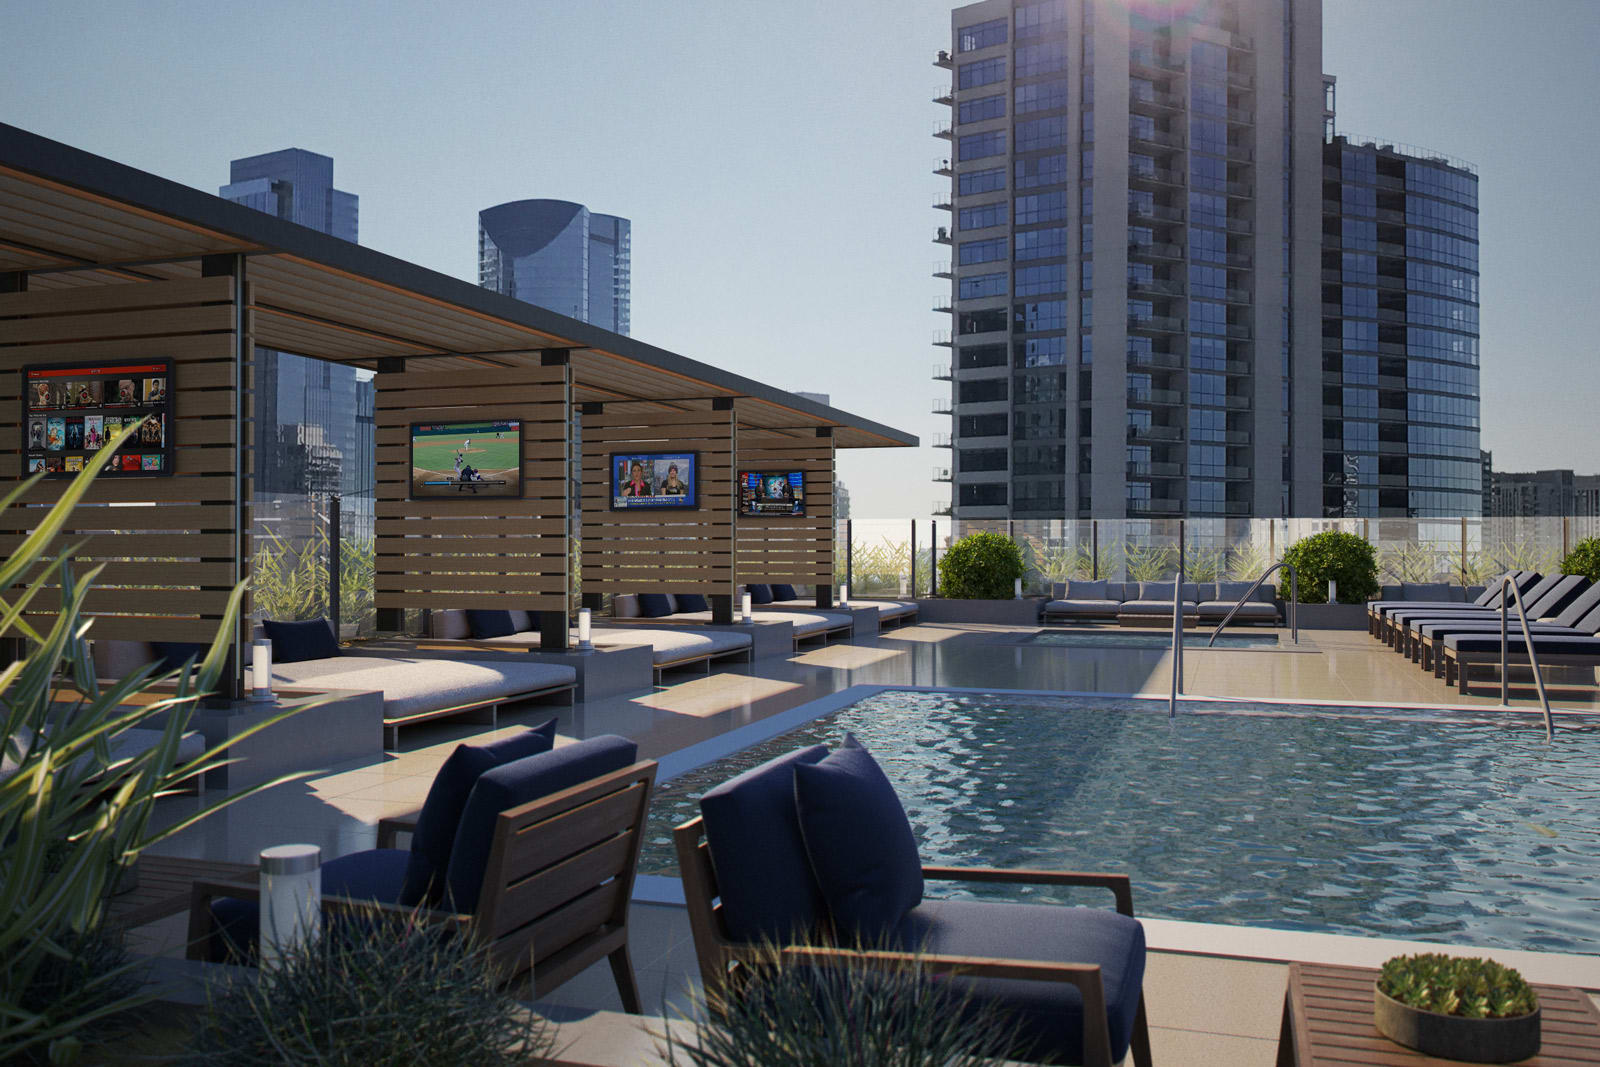 Poolside Cabanas with Large TVs at 640 North Wells, 640 N Wells, Chicago